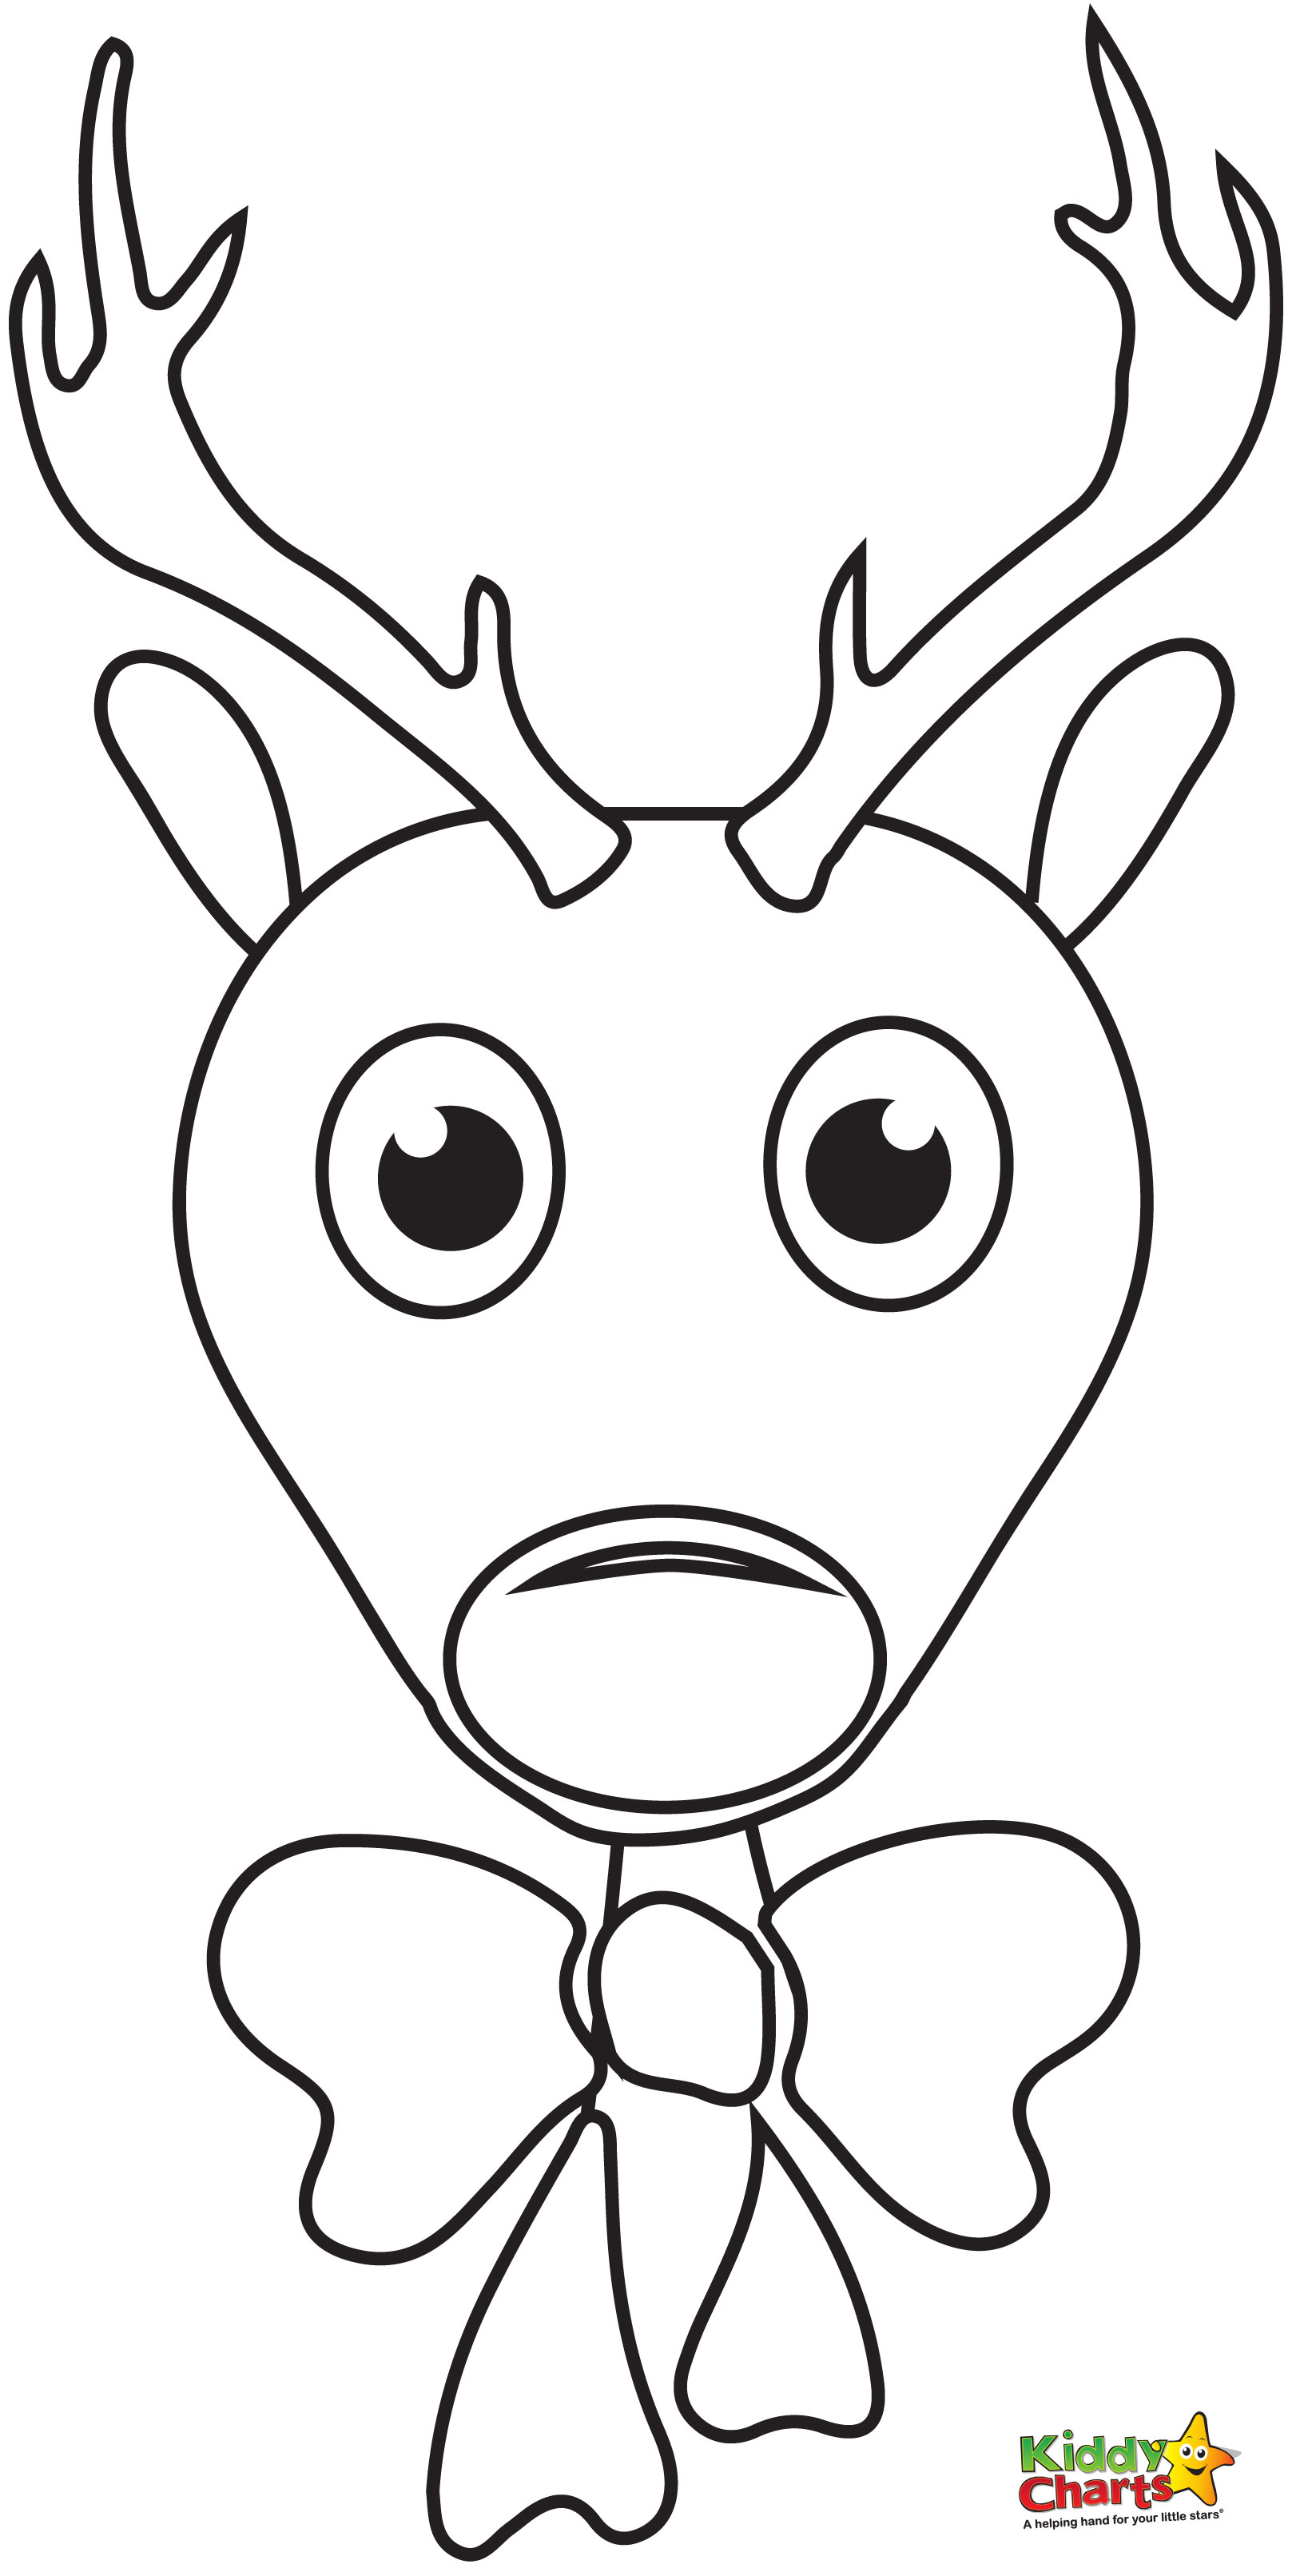 1627x3224 reindeer face coloring pages preschool in humorous print draw